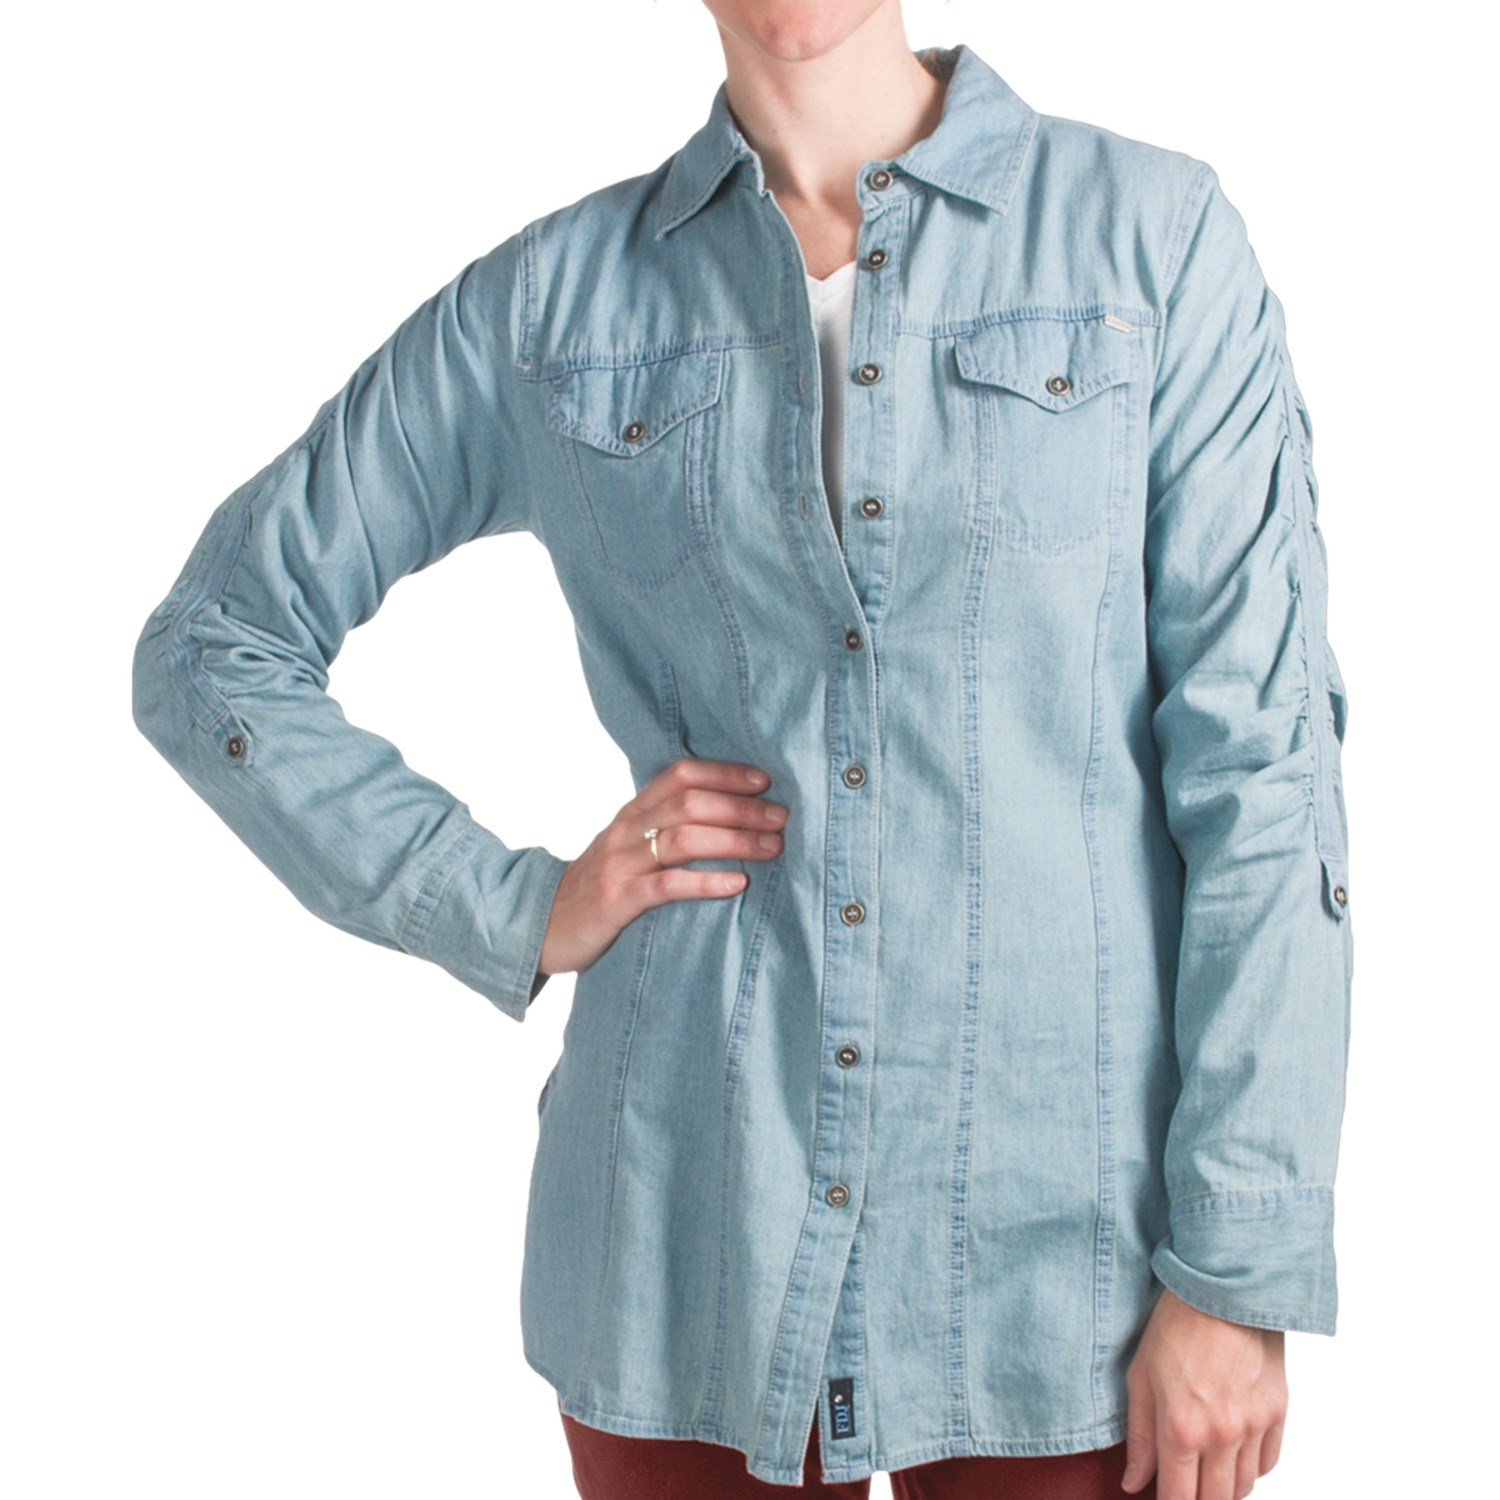 Fdj french dressing chambray shirt for women 6191g for Chambray shirt women